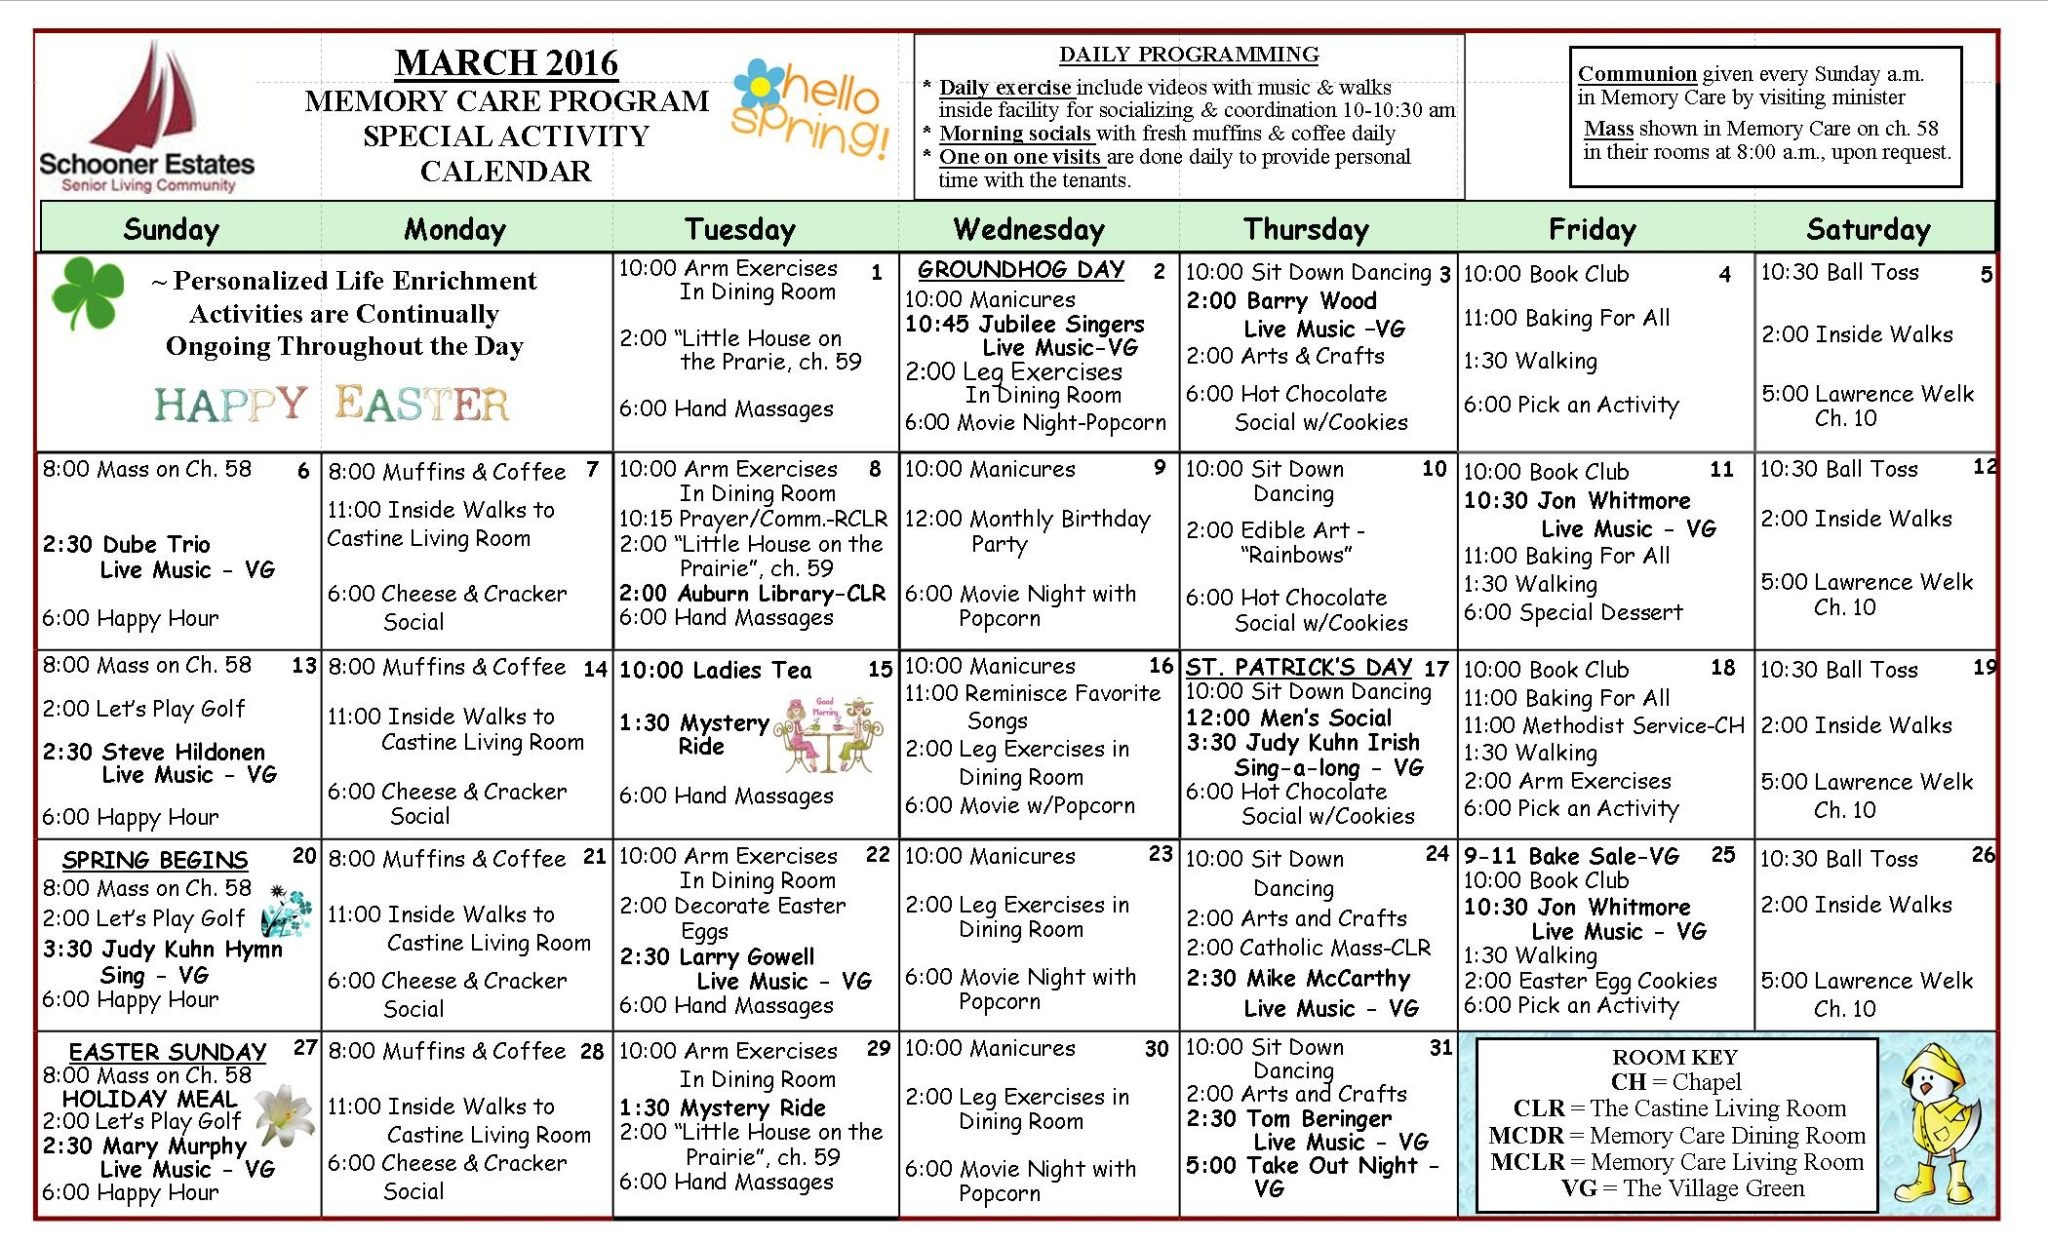 March 2016 Memory Care Activity Calendar